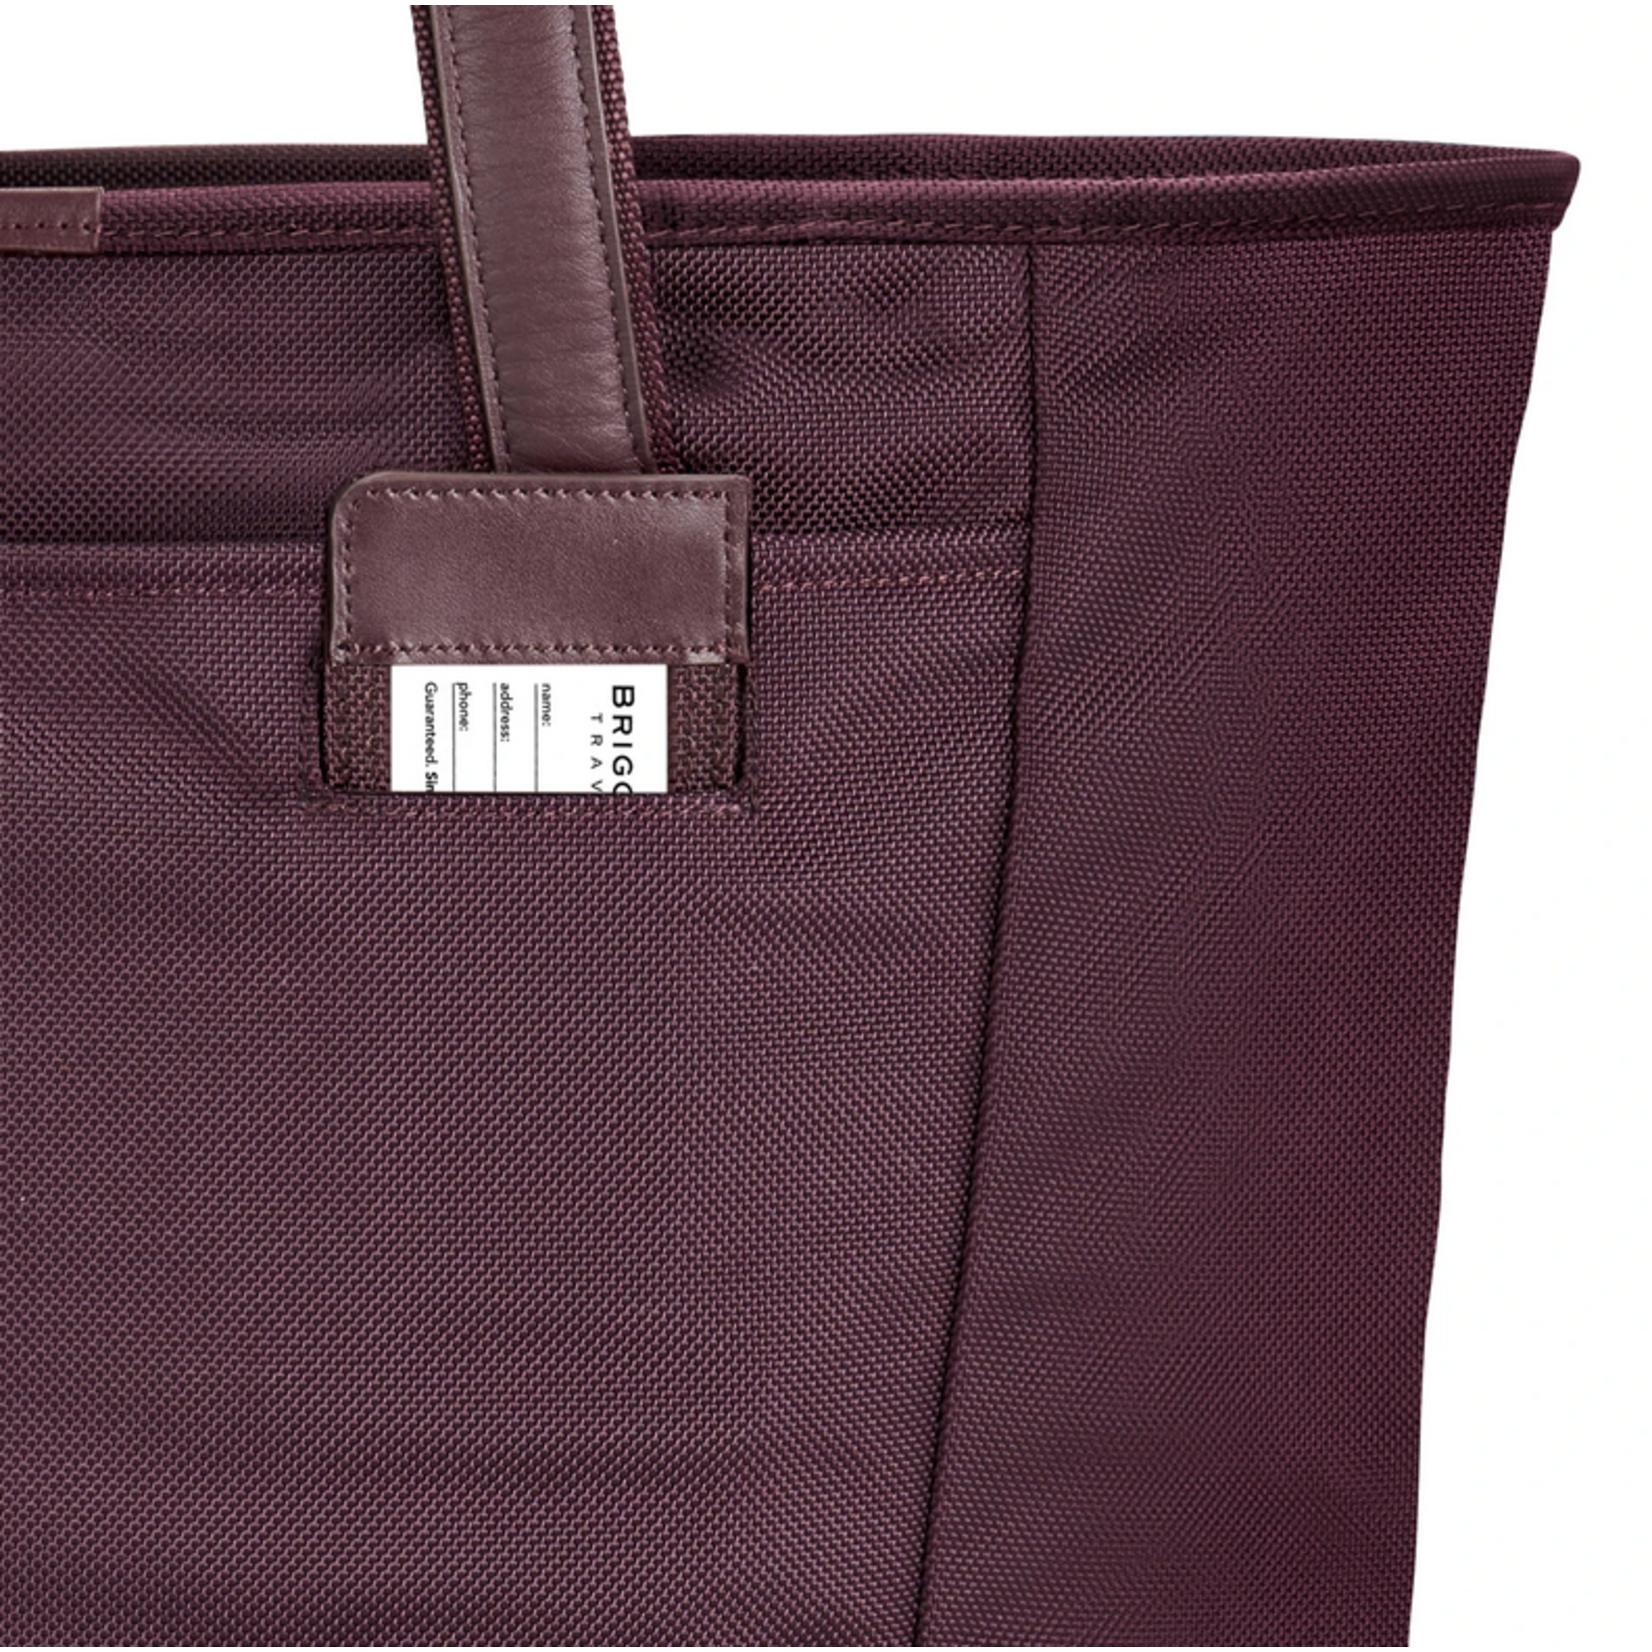 BRIGGS & RILEY BASELINE LARGE SHOPPING TOTE Plum